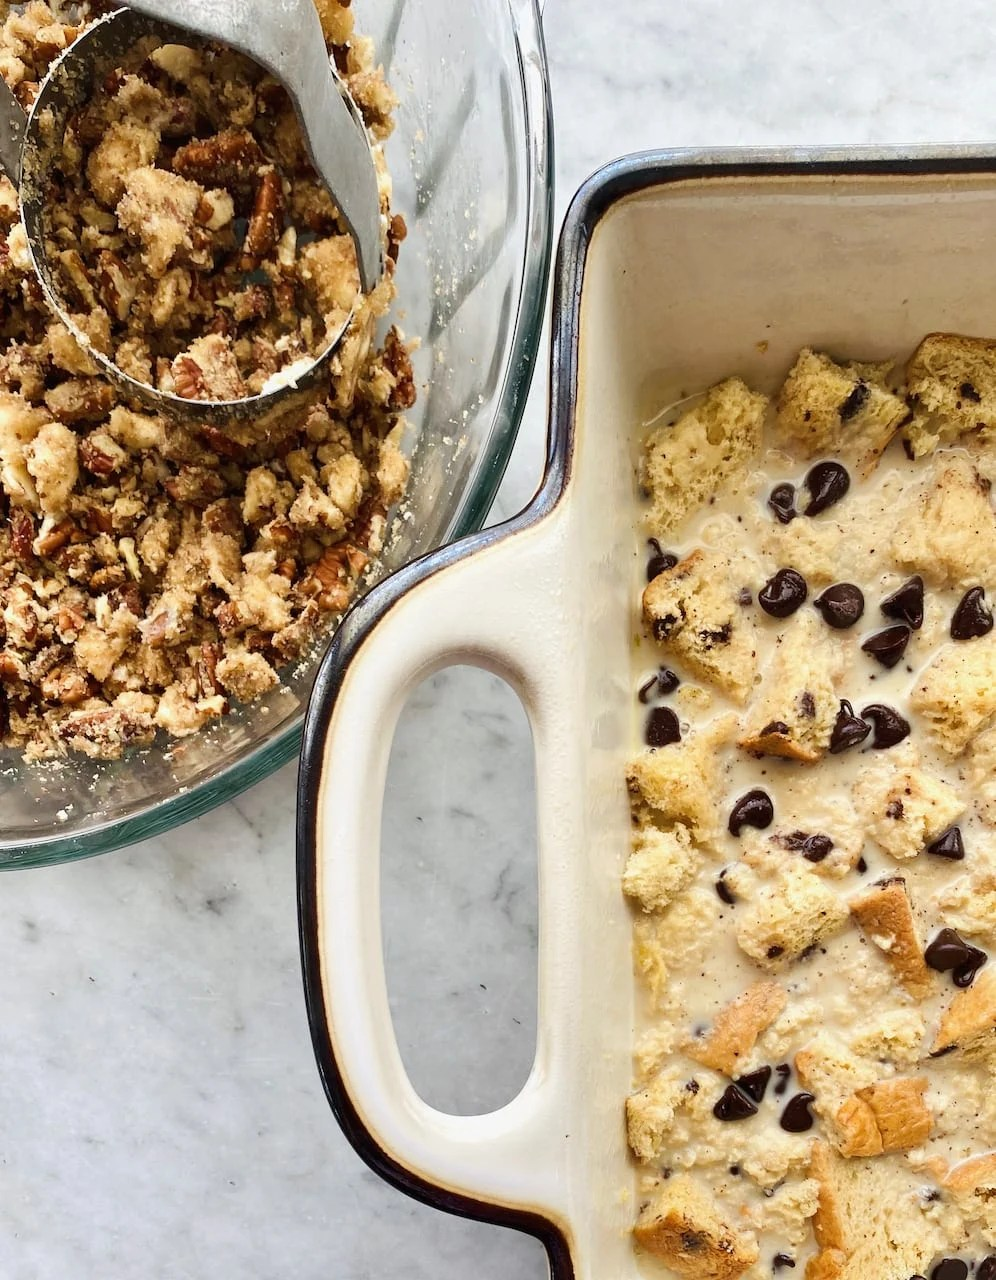 casserole dish with chocolate bread pudding and pecan topping in a separate dish